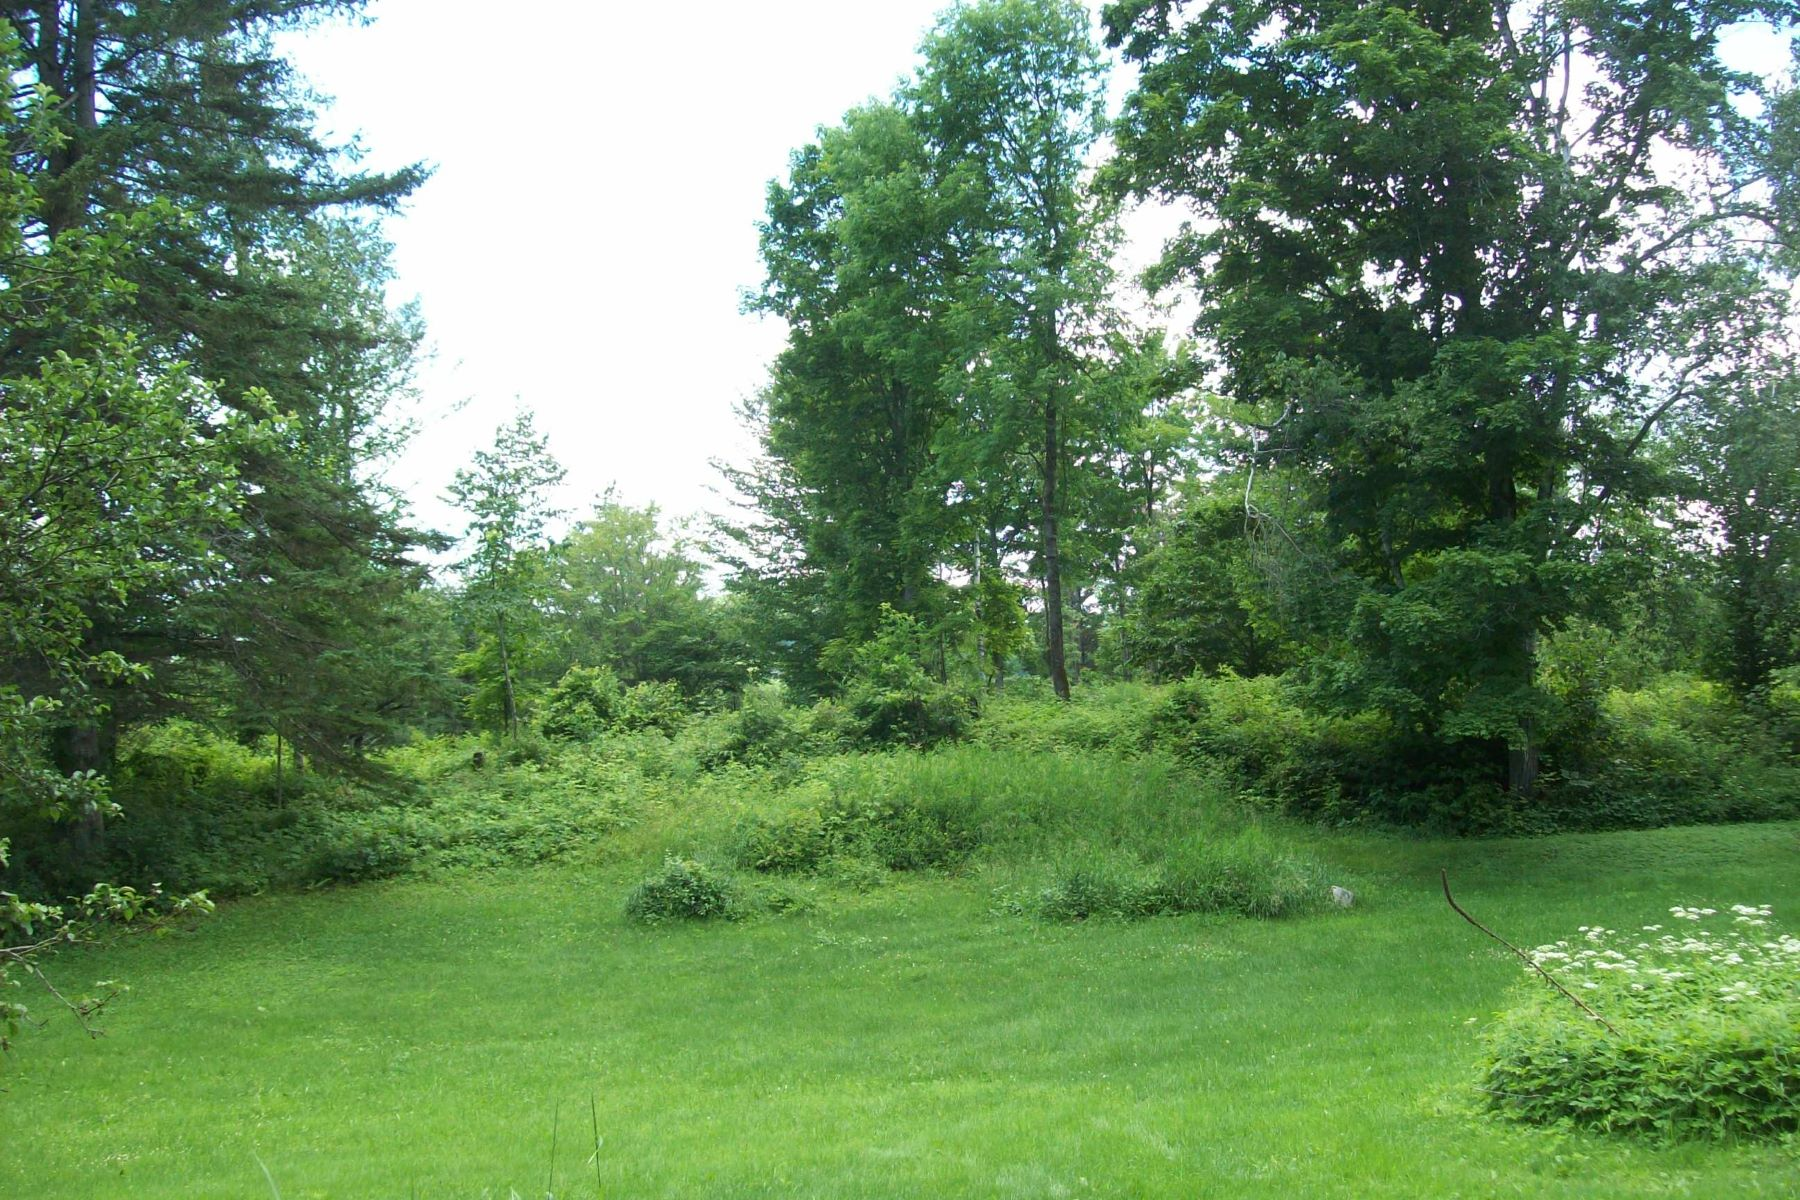 Land for Sale at Old apple trees and pretty views 297 Coppermine Rd Corinth, Vermont 05039 United States